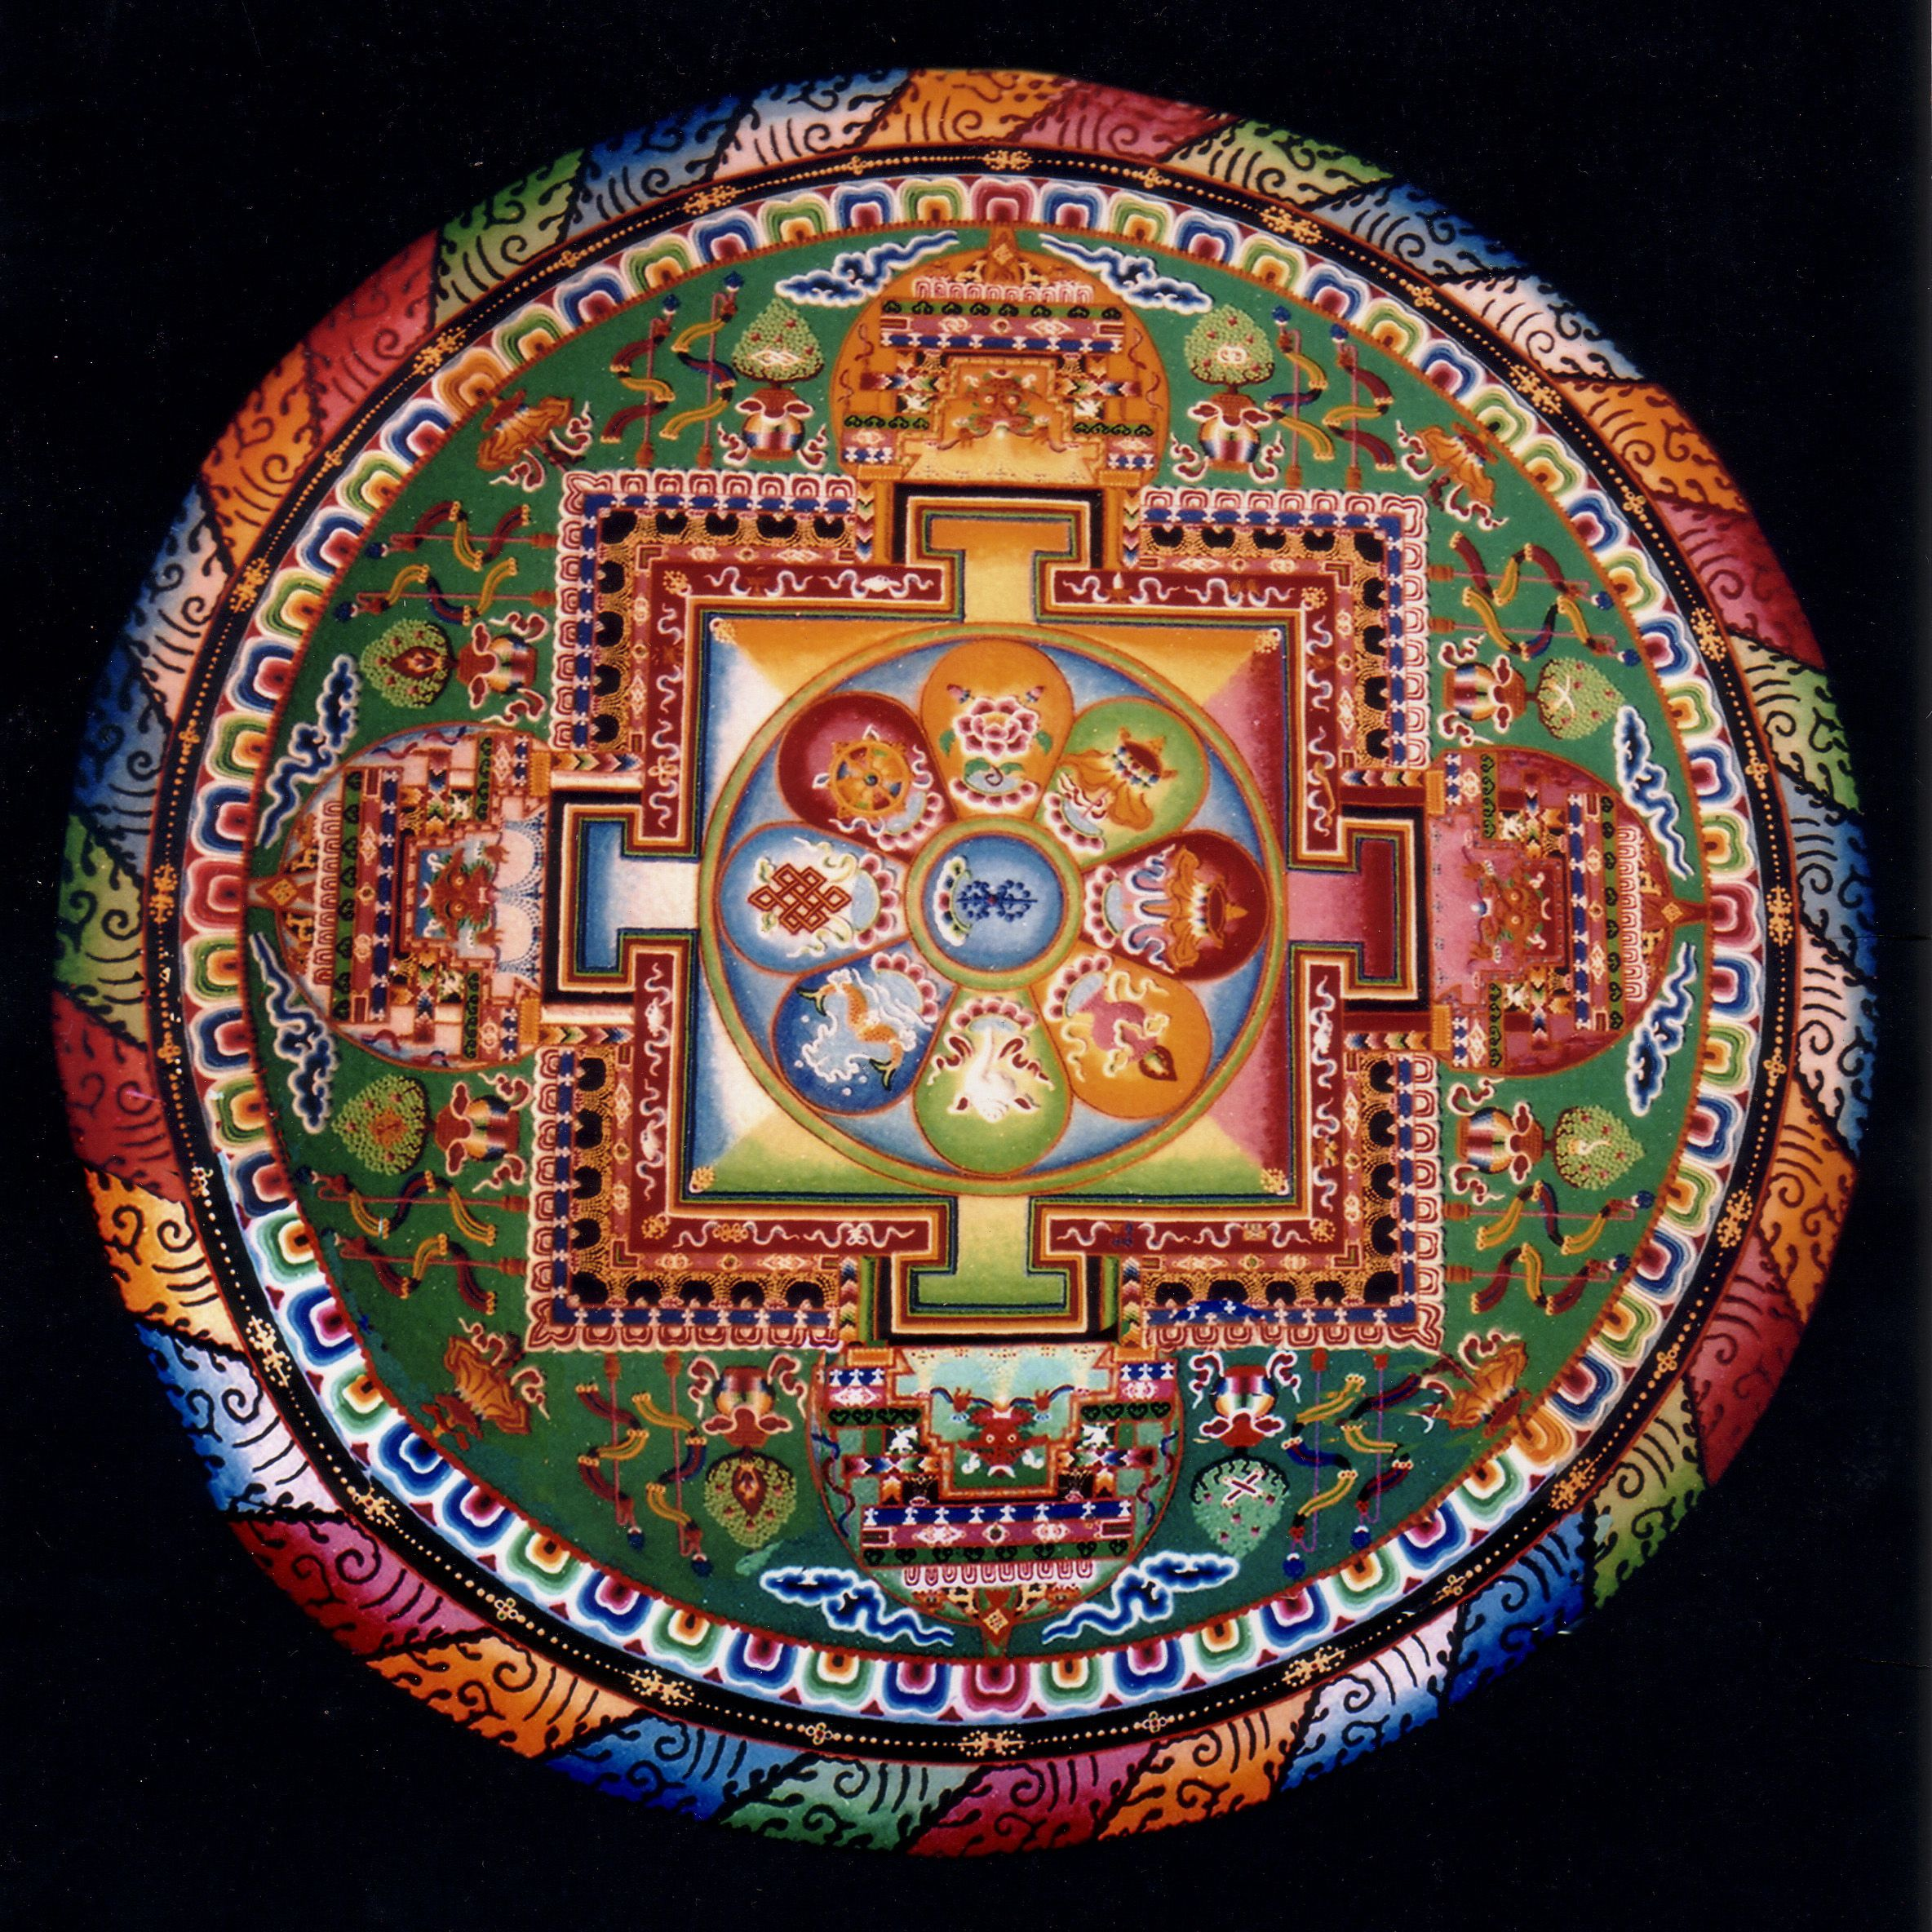 All made from sand. Mandala sand art by Buddhist Monks